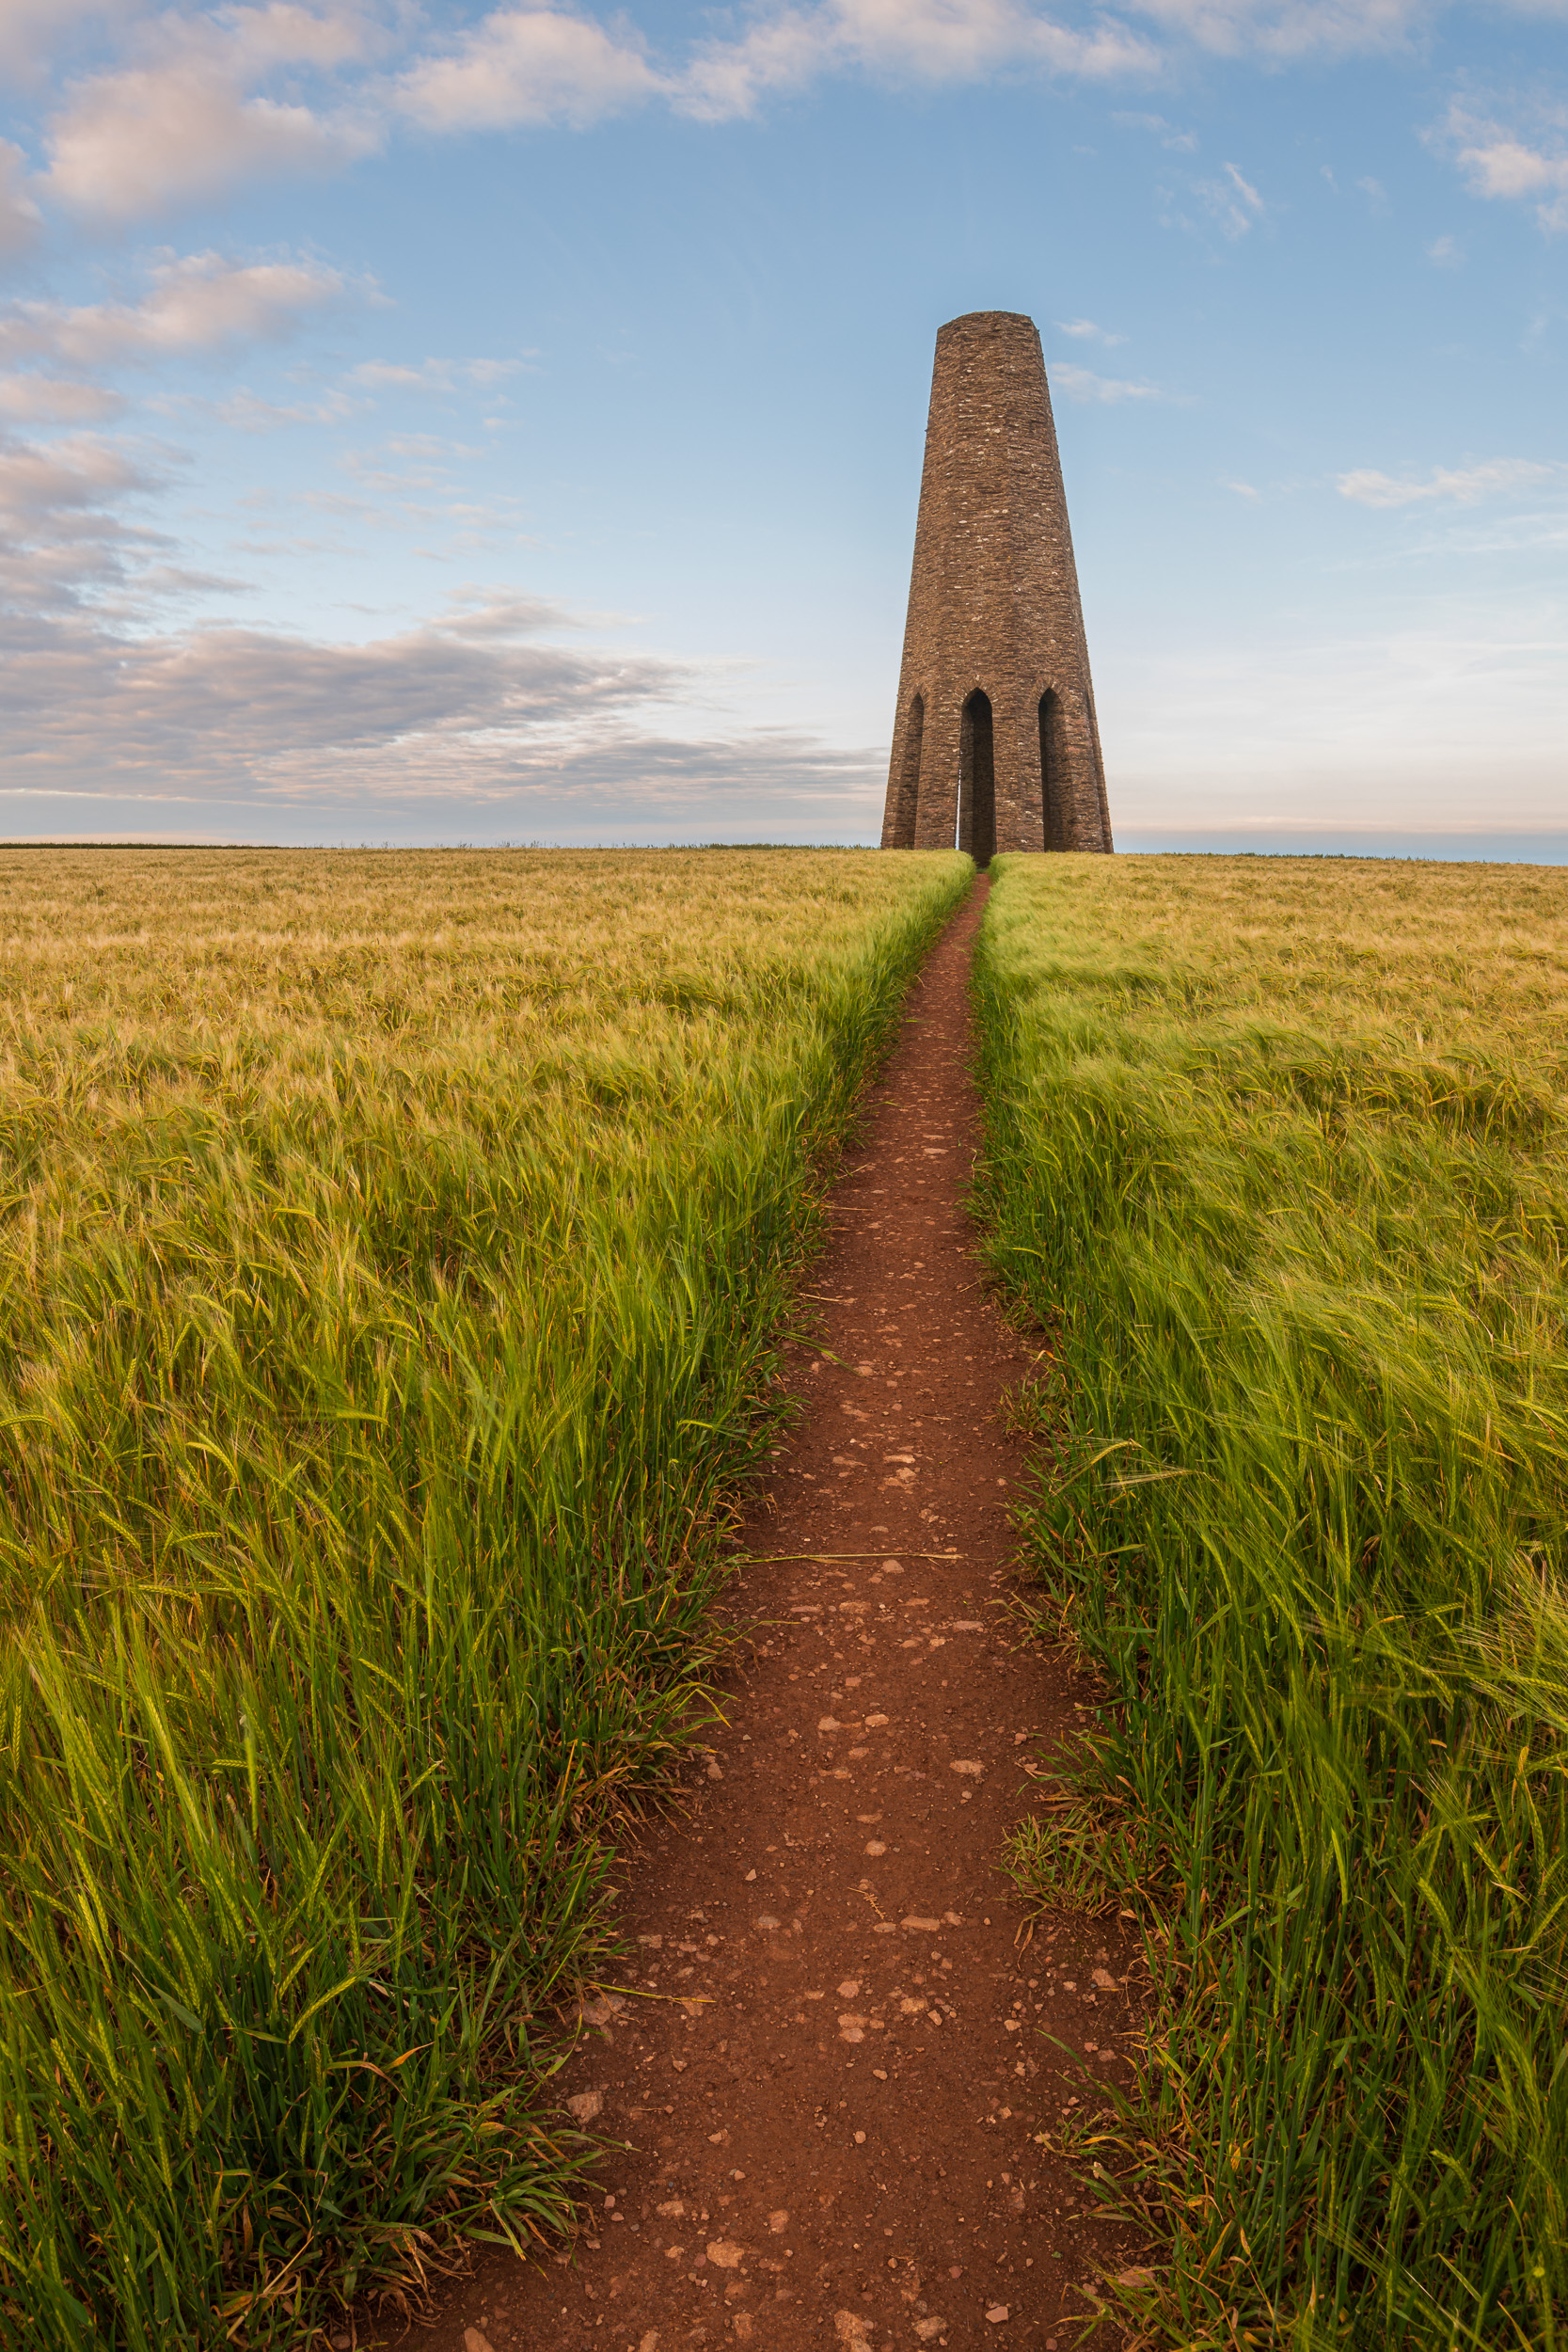 The Daymark Tower, Devon  - Nikon D850, Nikkor 16-35 mm f/4 at 16 mm, f/13, 1/5th sec at ISO 64, Kase CPL and ND grad.